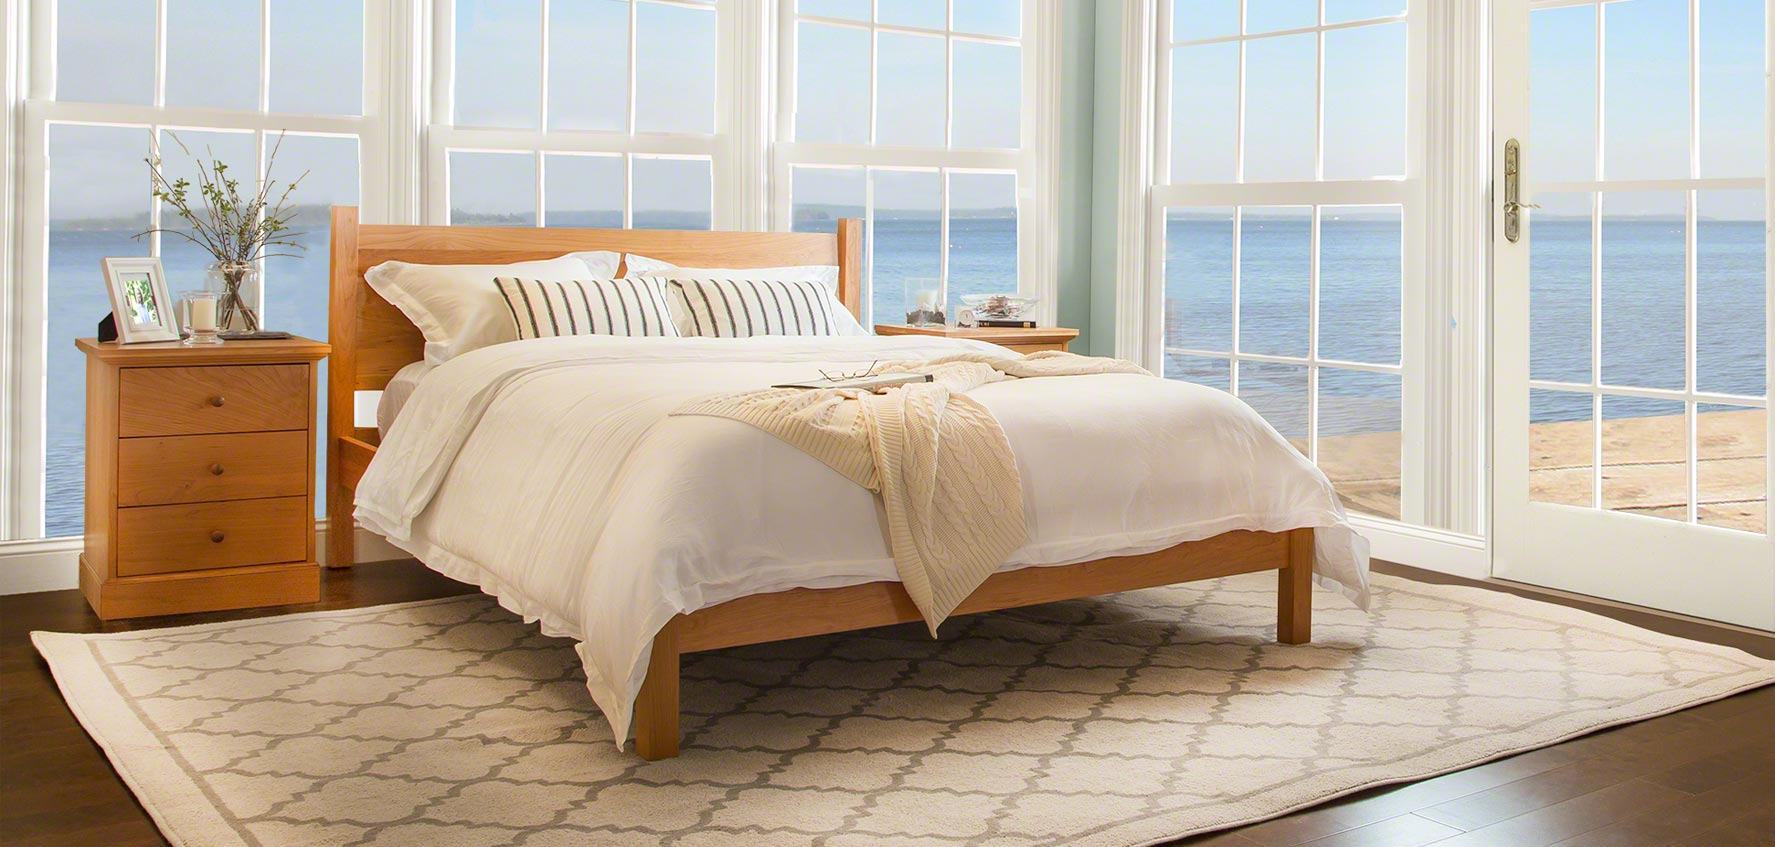 Cheap Wooden Bed Frames Handcrafted Wood Beds Vermont Woods Studios